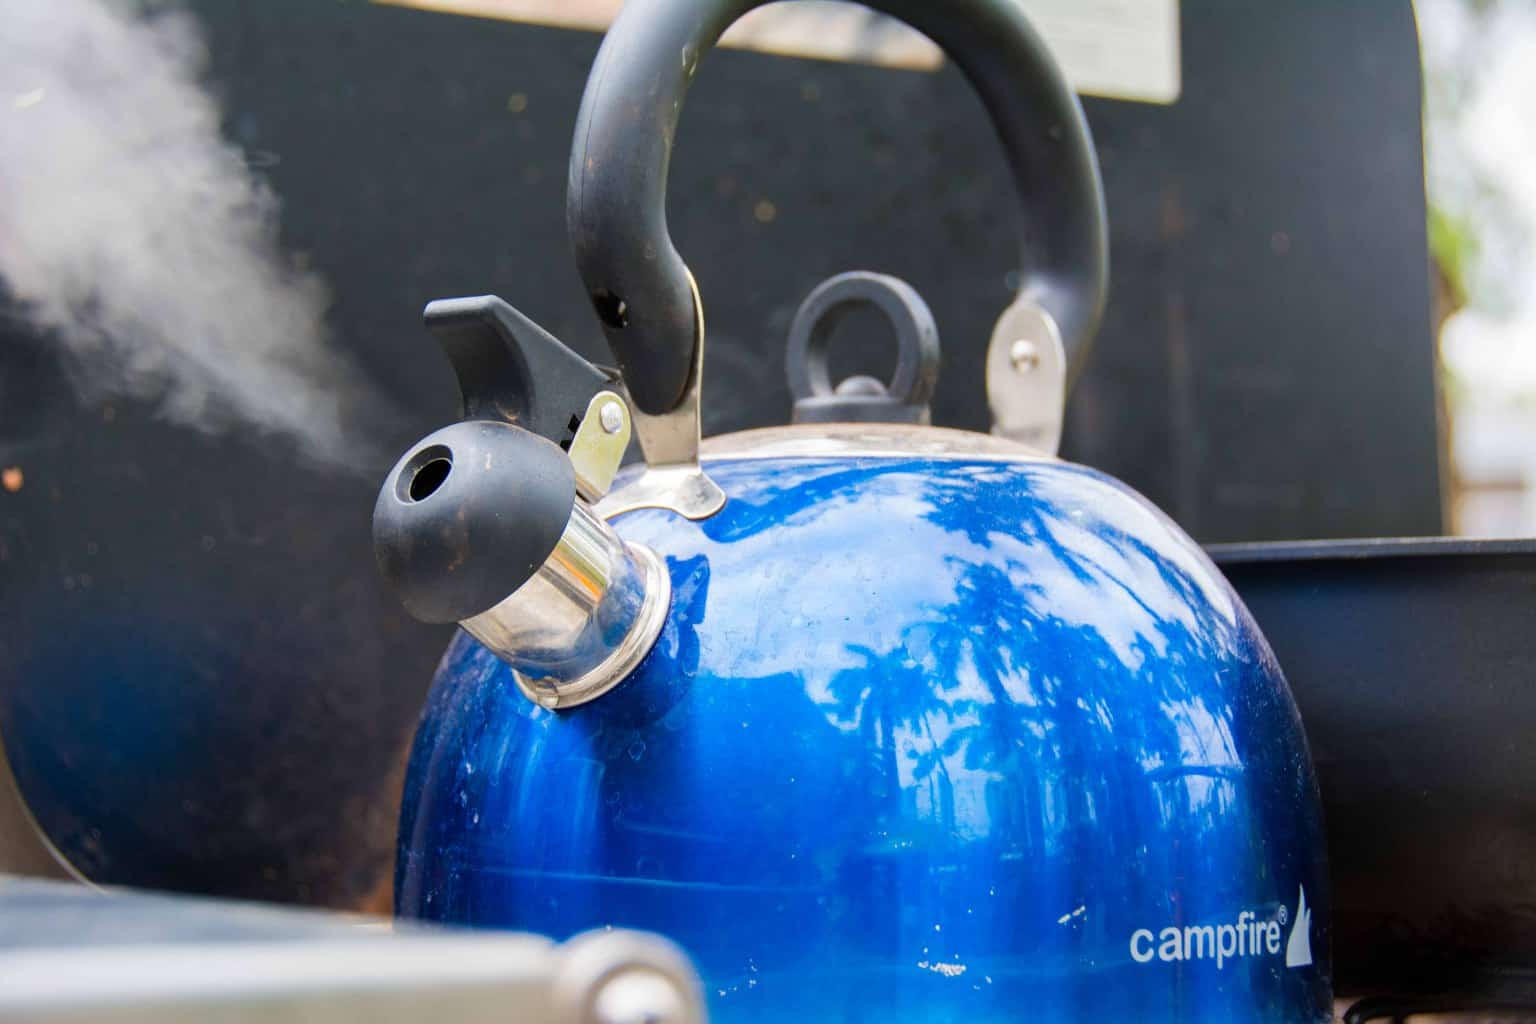 Campfire camping kettle